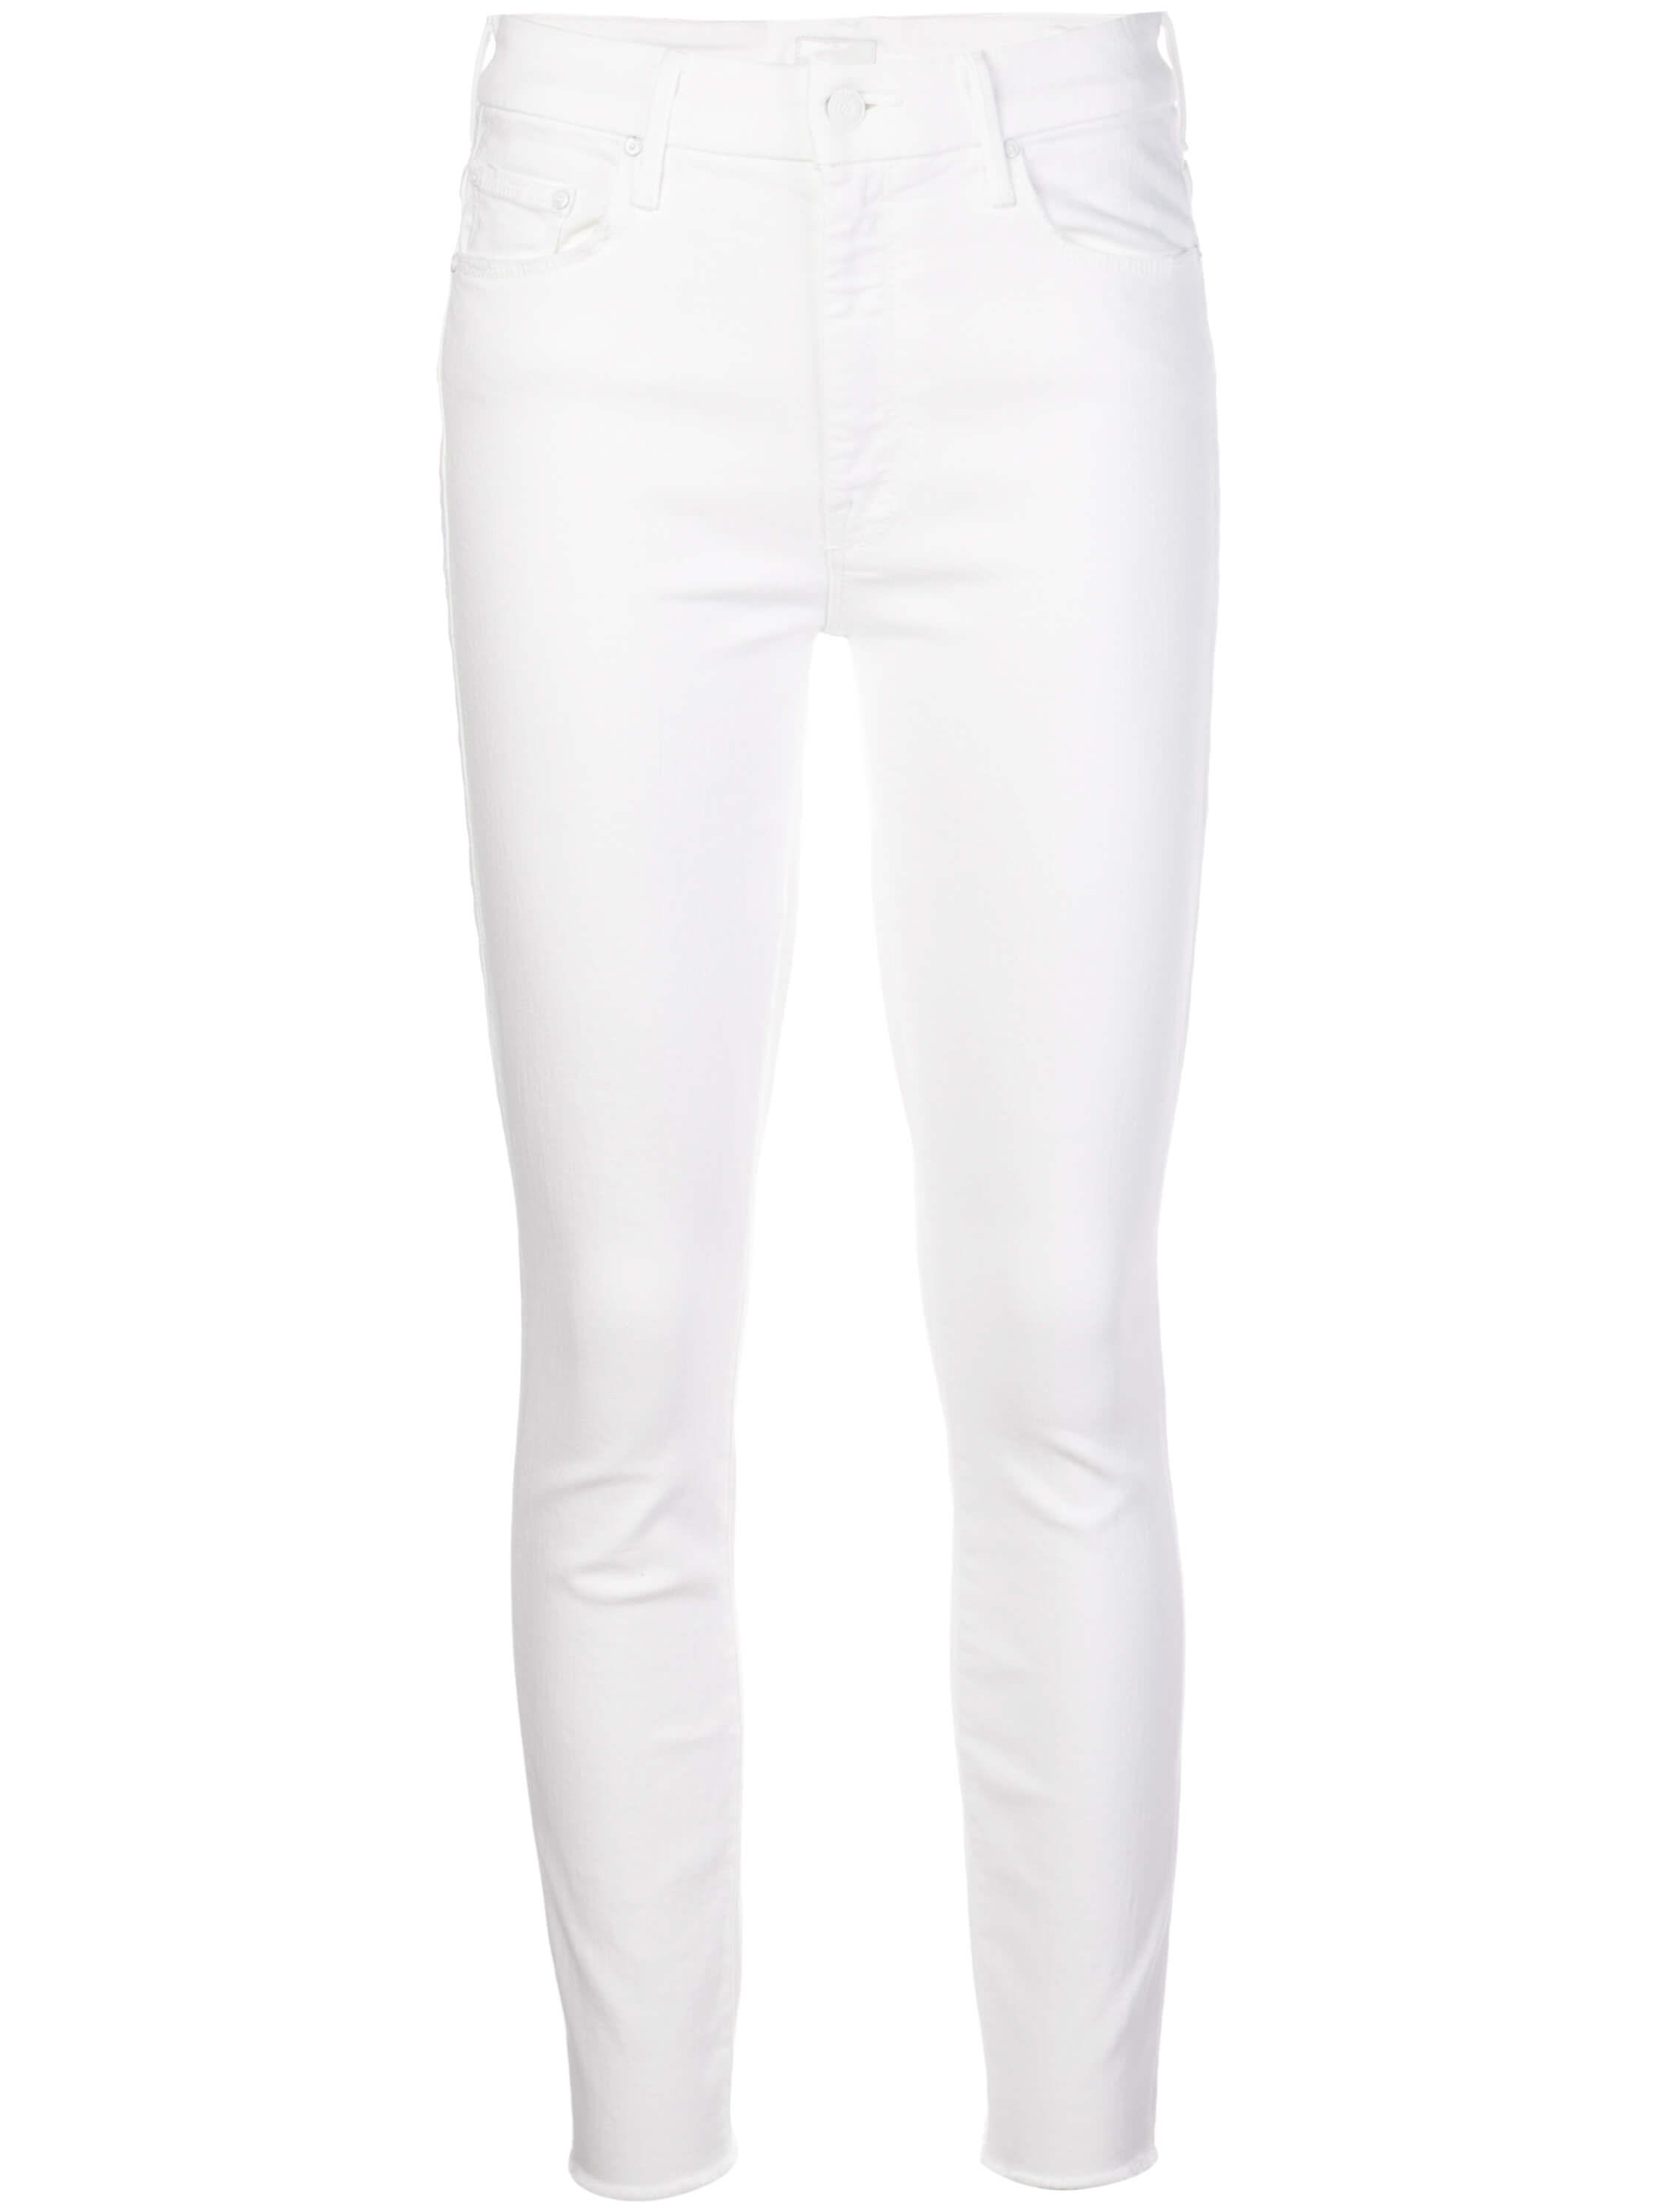 Looker High Waisted Ankle Fray Skinny